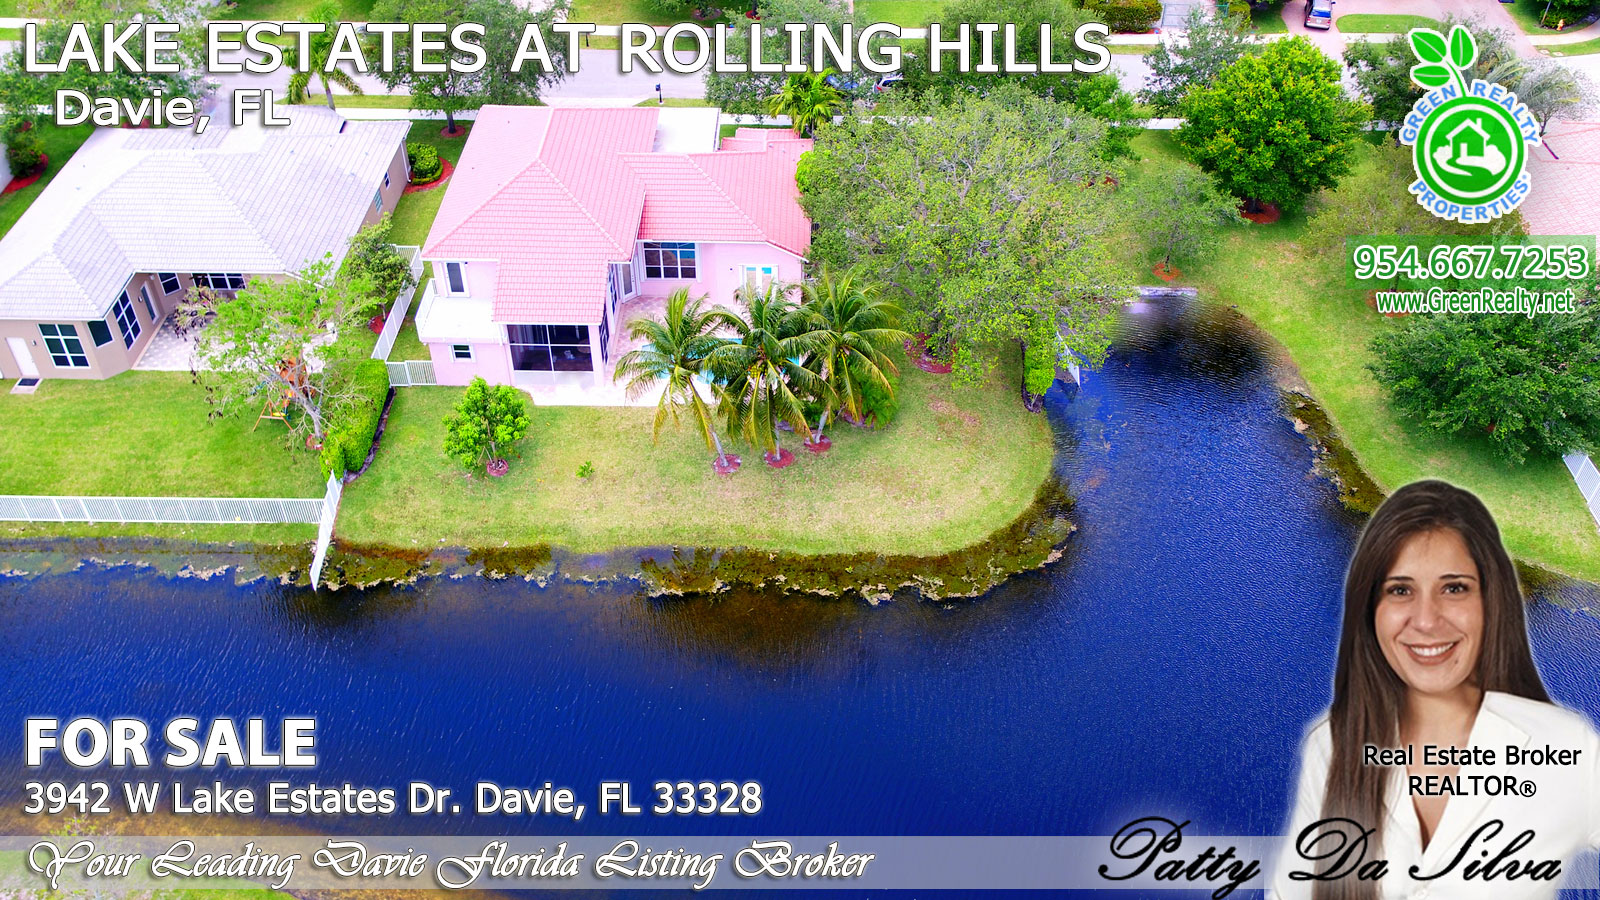 Your-leading-davie-florida-listing-broker-Patty-da-silva-9546677253-agent